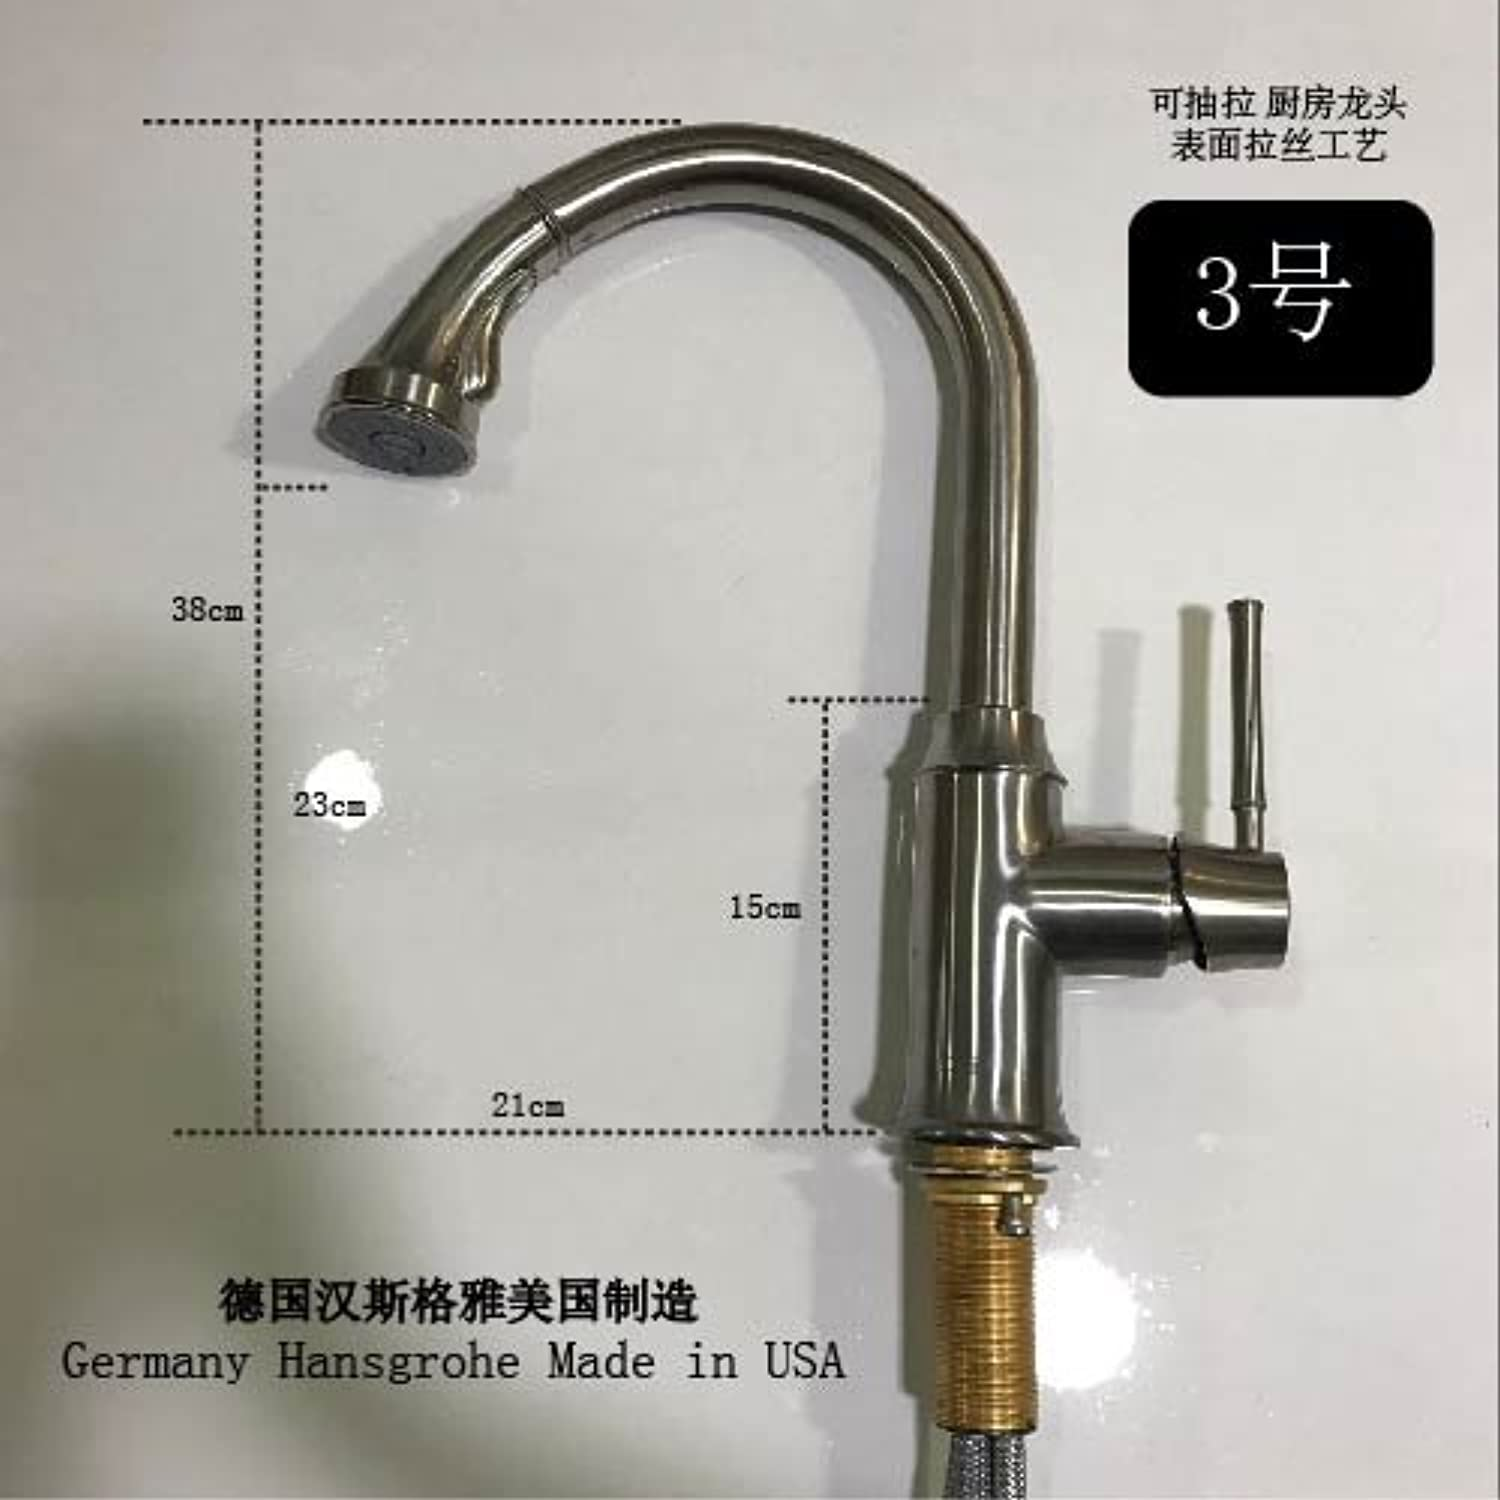 SADASD Contemporary Bathroom Full Copper Basin Faucet Brushed Basin Sink Mixer Tap Ceramic Valve Single Hole Single Handle Cold Water With G1 2 Hose